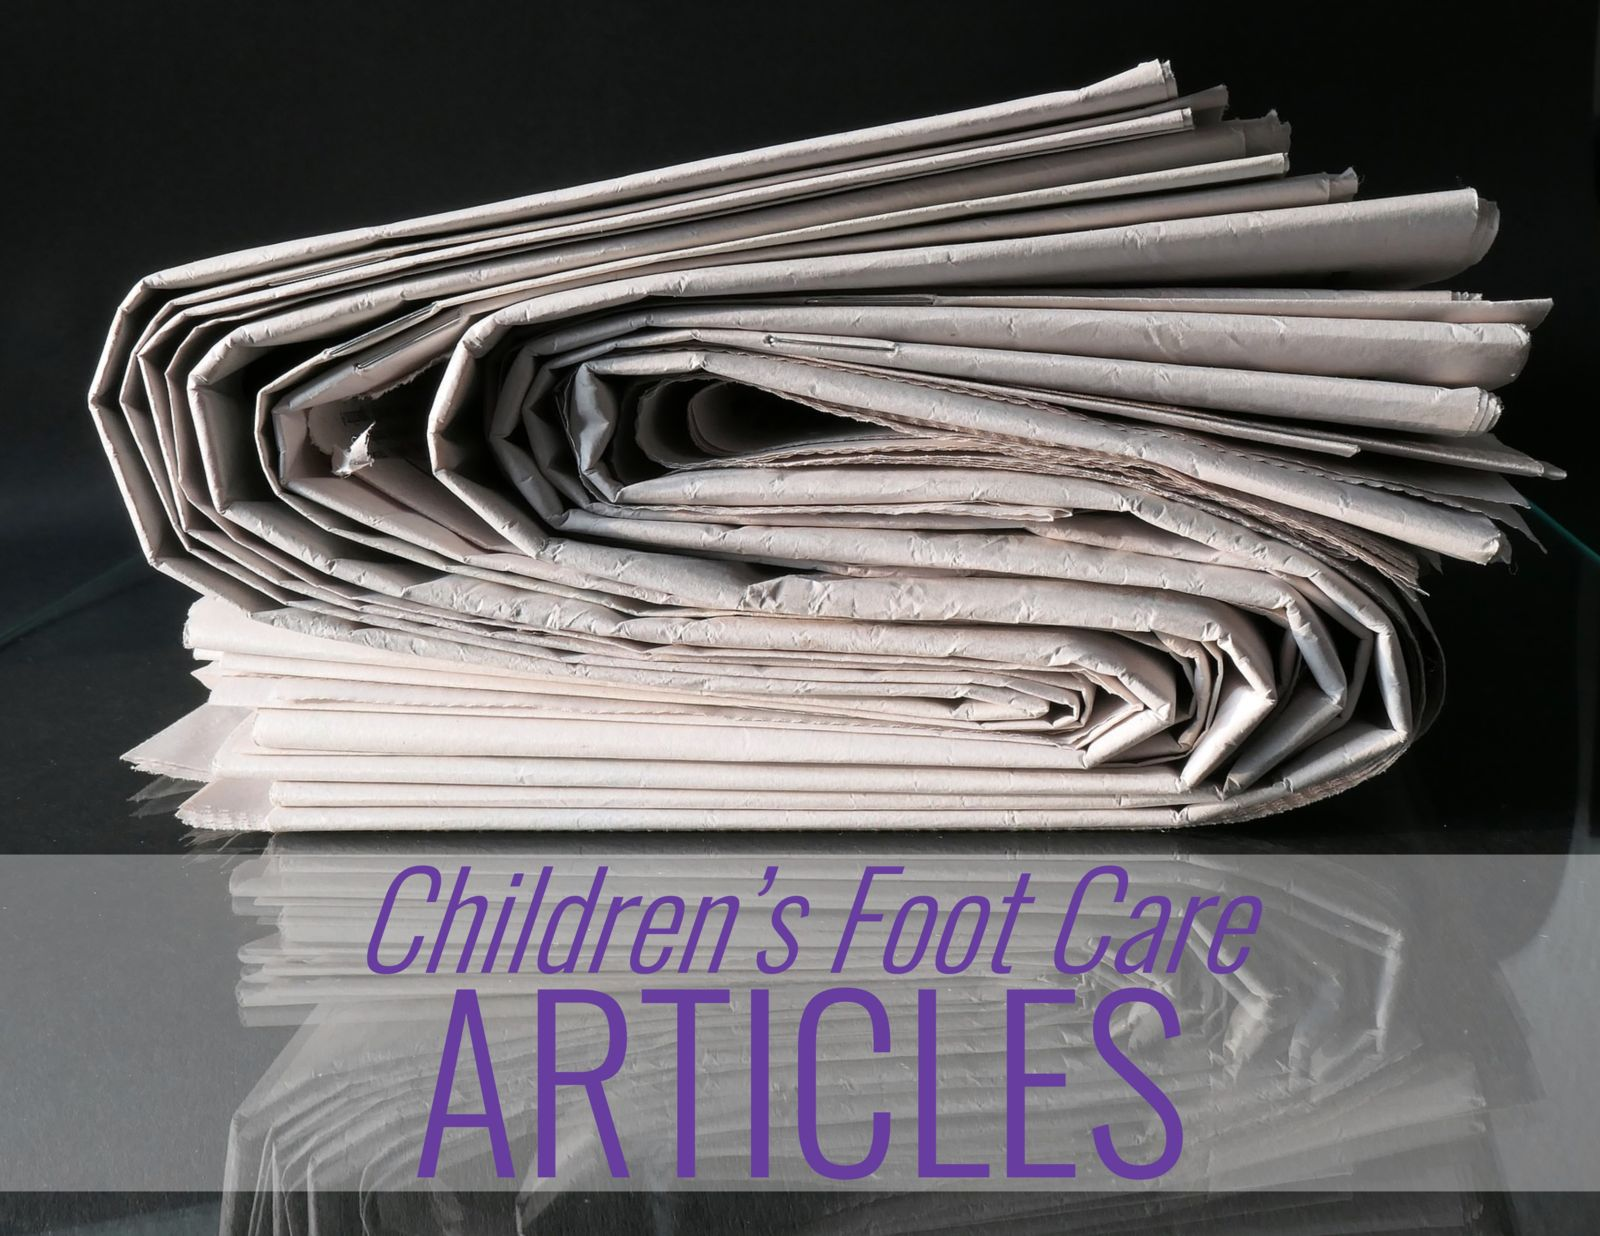 newspapers and the words: Children's Foot Care Articles